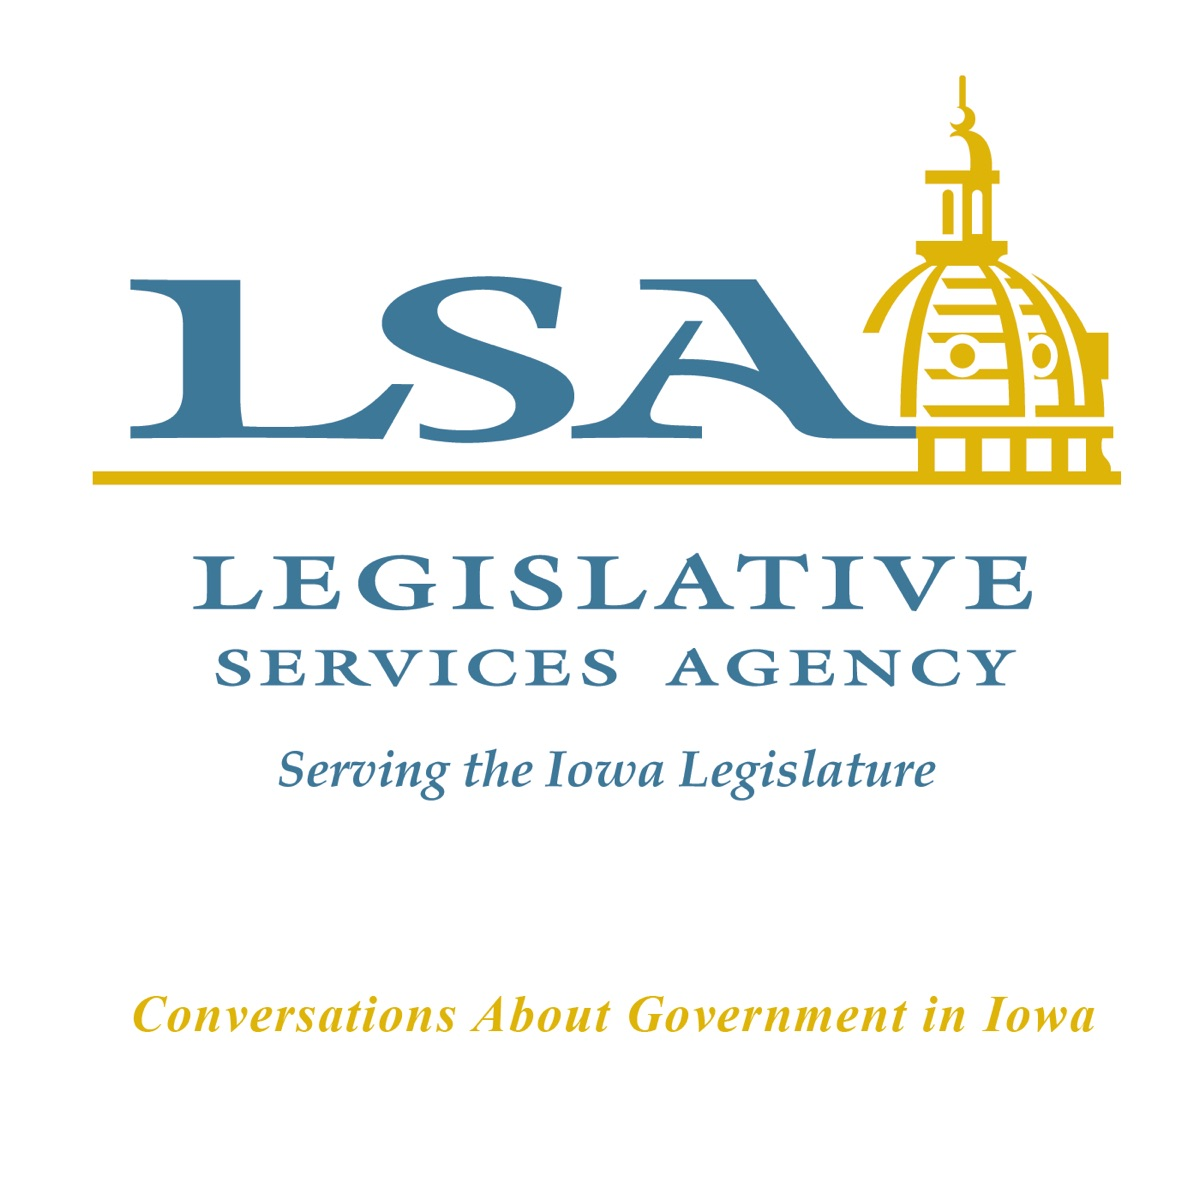 Conversations About Government in Iowa